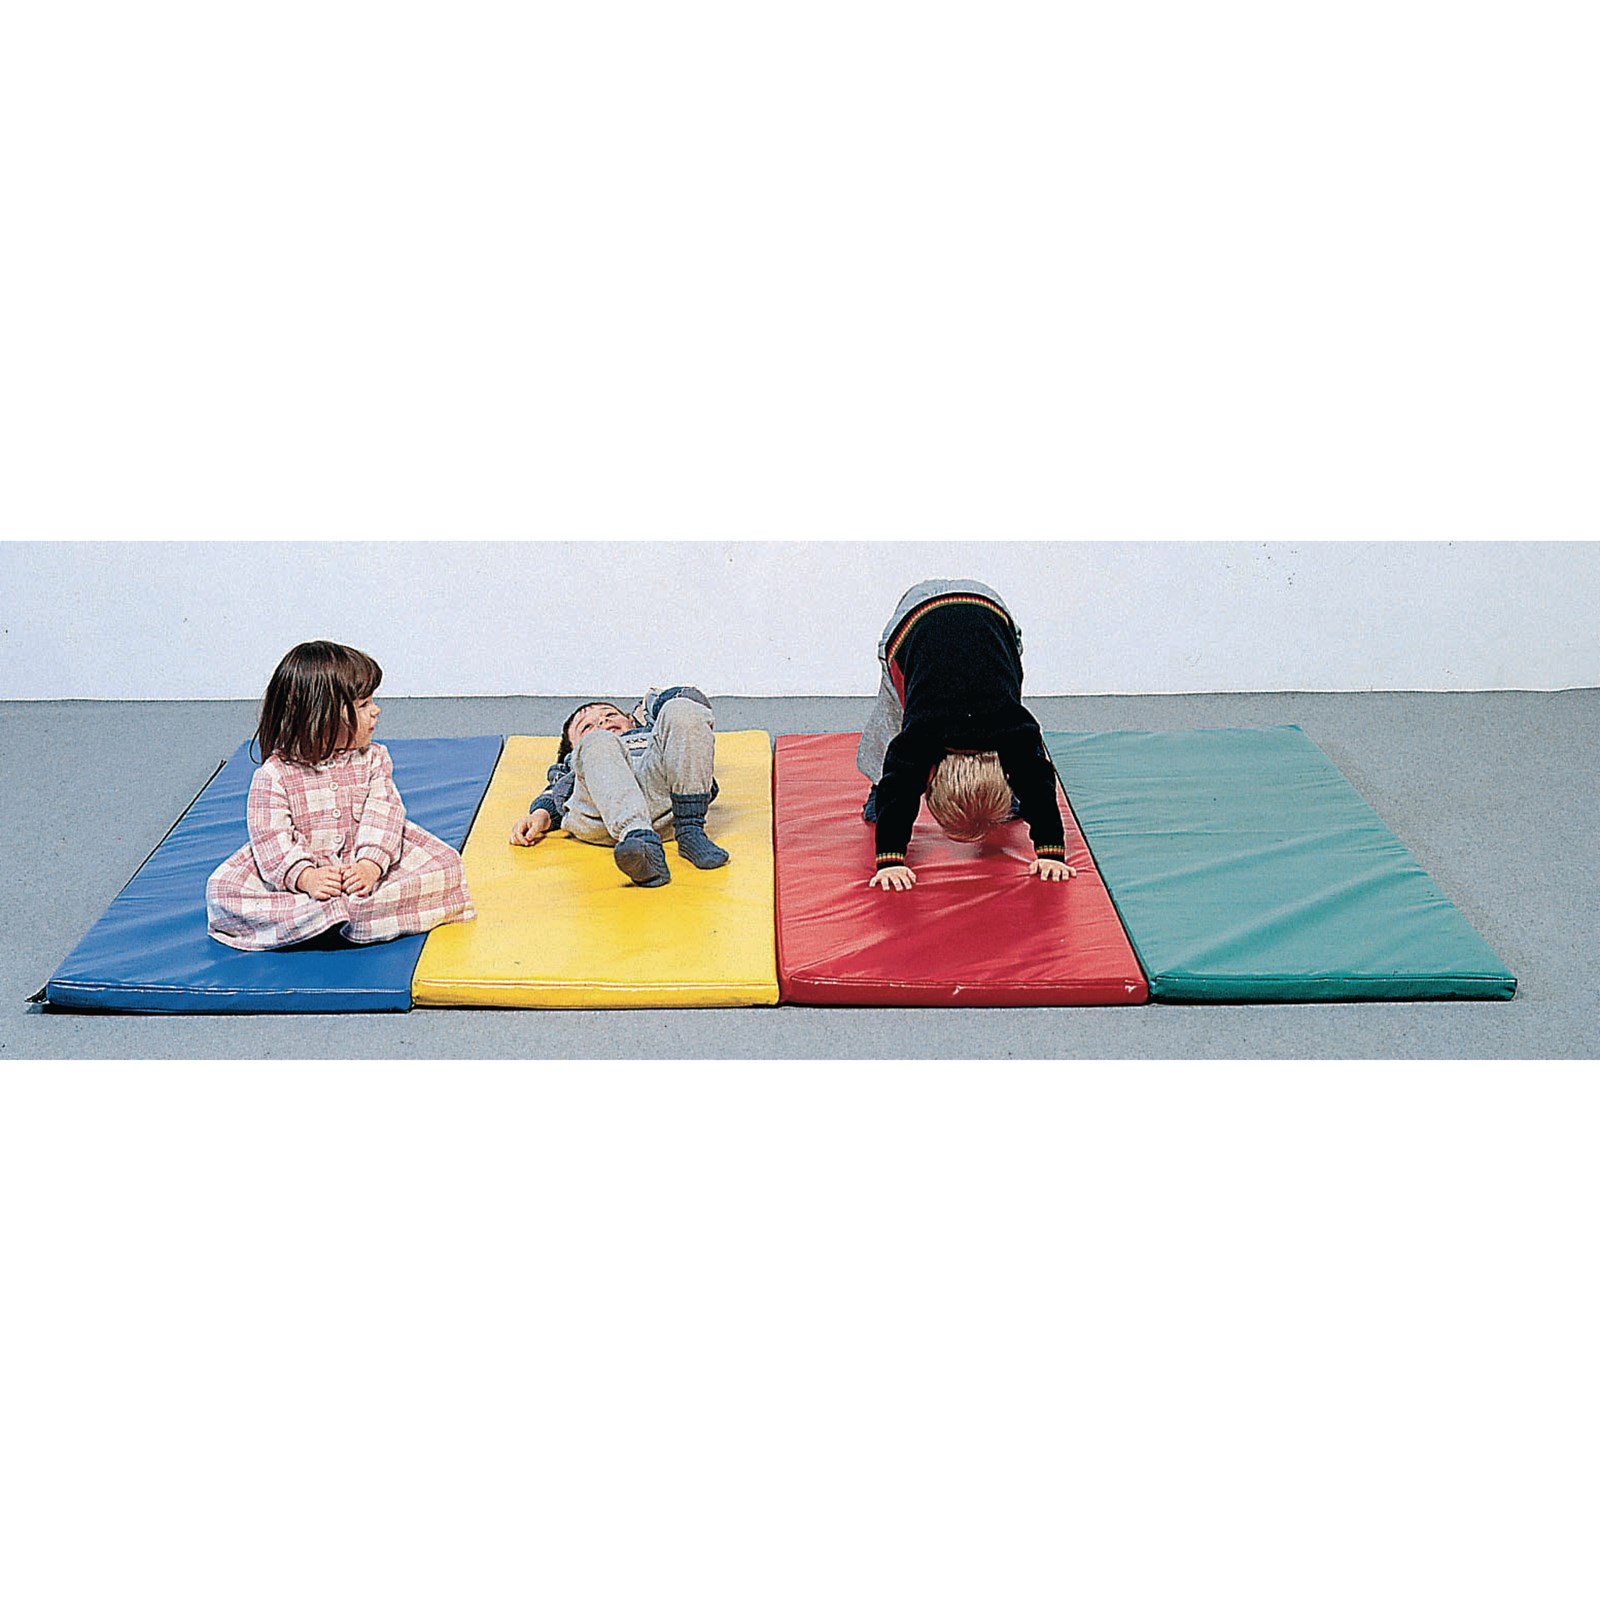 beam balance training gymnastics inflatable mat track tumbling air products